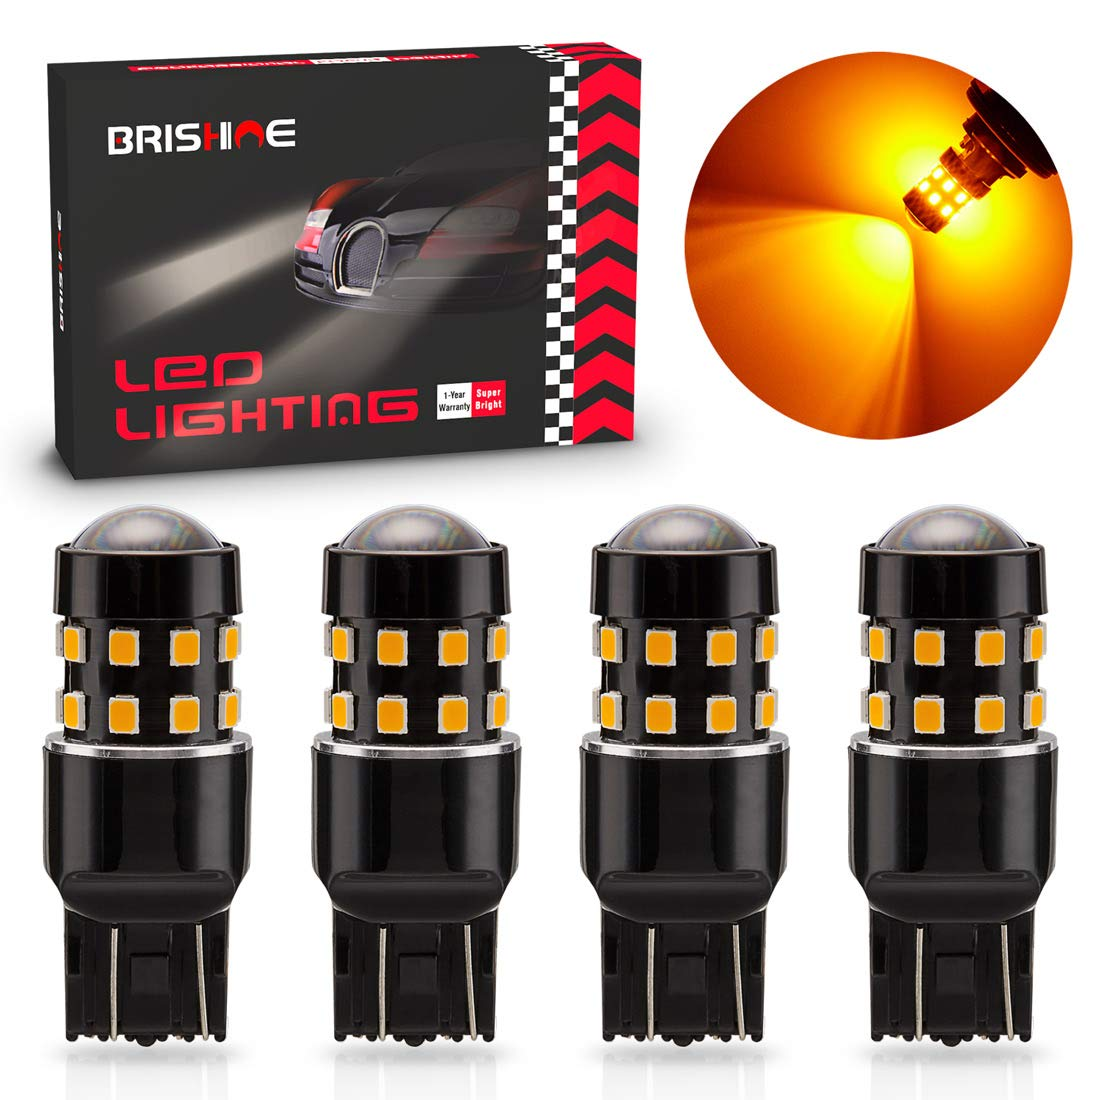 Tail Center High Mount Stop Lights BRISHINE 300LM Extremely Bright Canbus Error Free 194 168 2825 W5W T10 LED Bulbs Brilliant Red 9-SMD 2835 Chipsets for Map Dome Rear Side Marker Lights Pack of 4